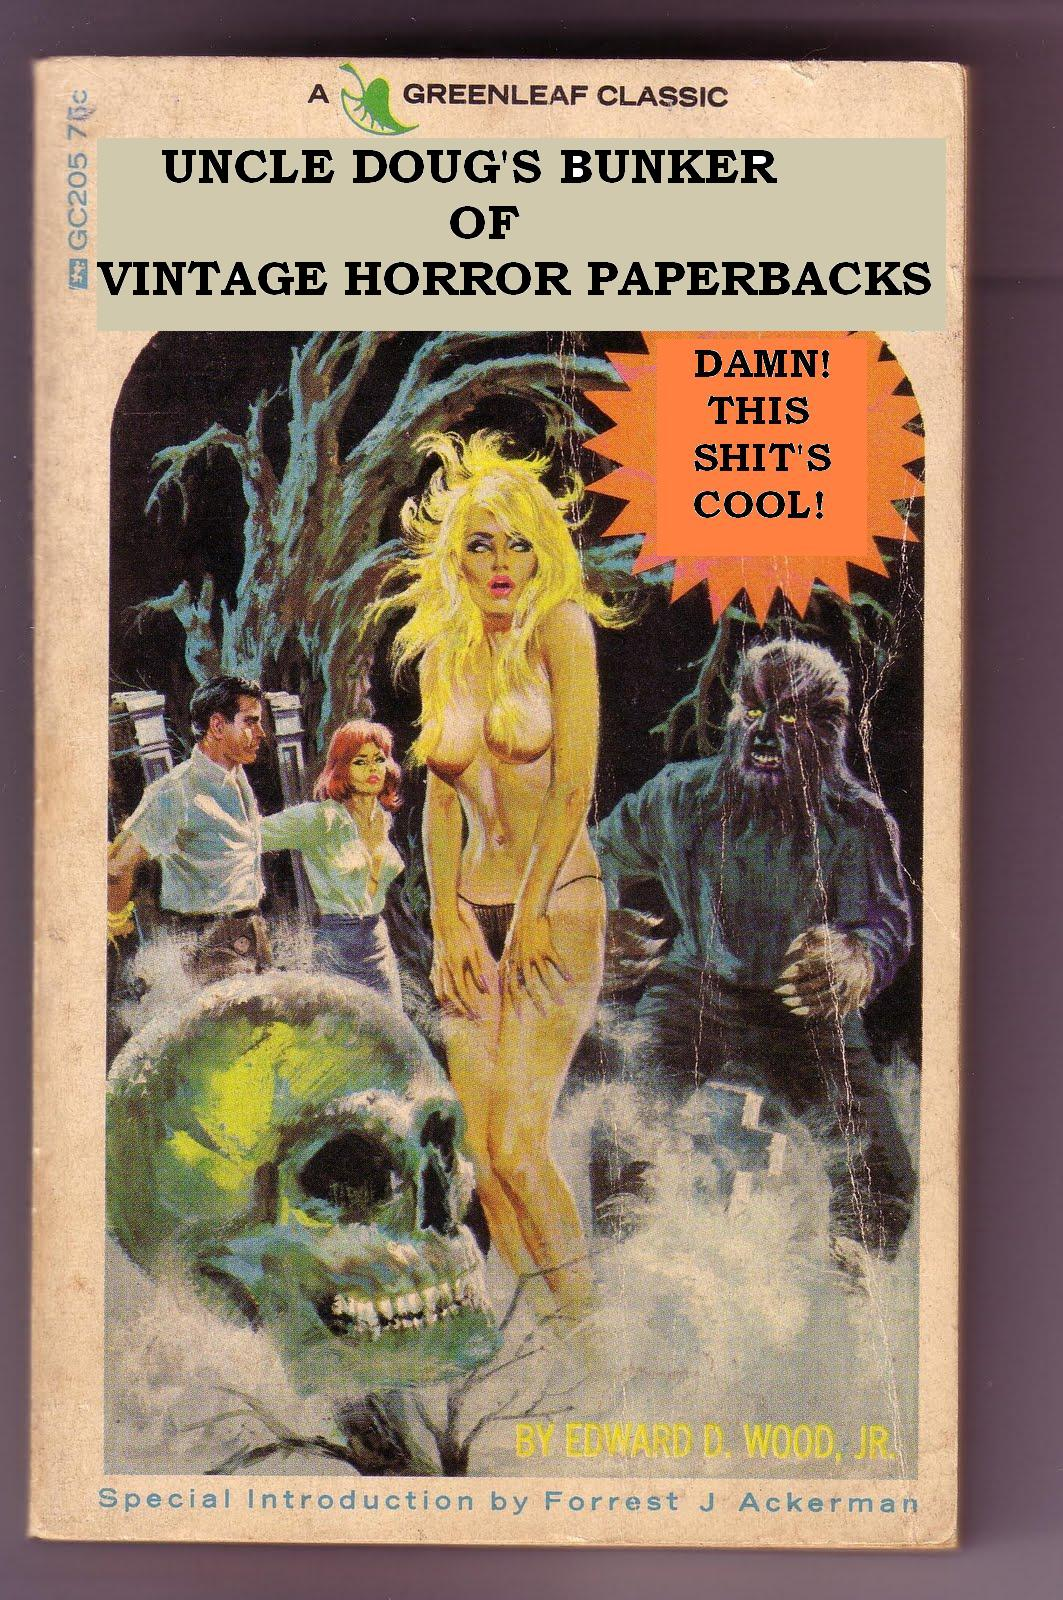 Uncle Doug's Bunker Of Horror Hi! This is my attempt at starting a small blog about, what is in my eyes, the golden age of Horror Anthology Paperbacks and a huge passion of mine. Update: I've realized that what is even more important is the people have to be made aware of these wonder